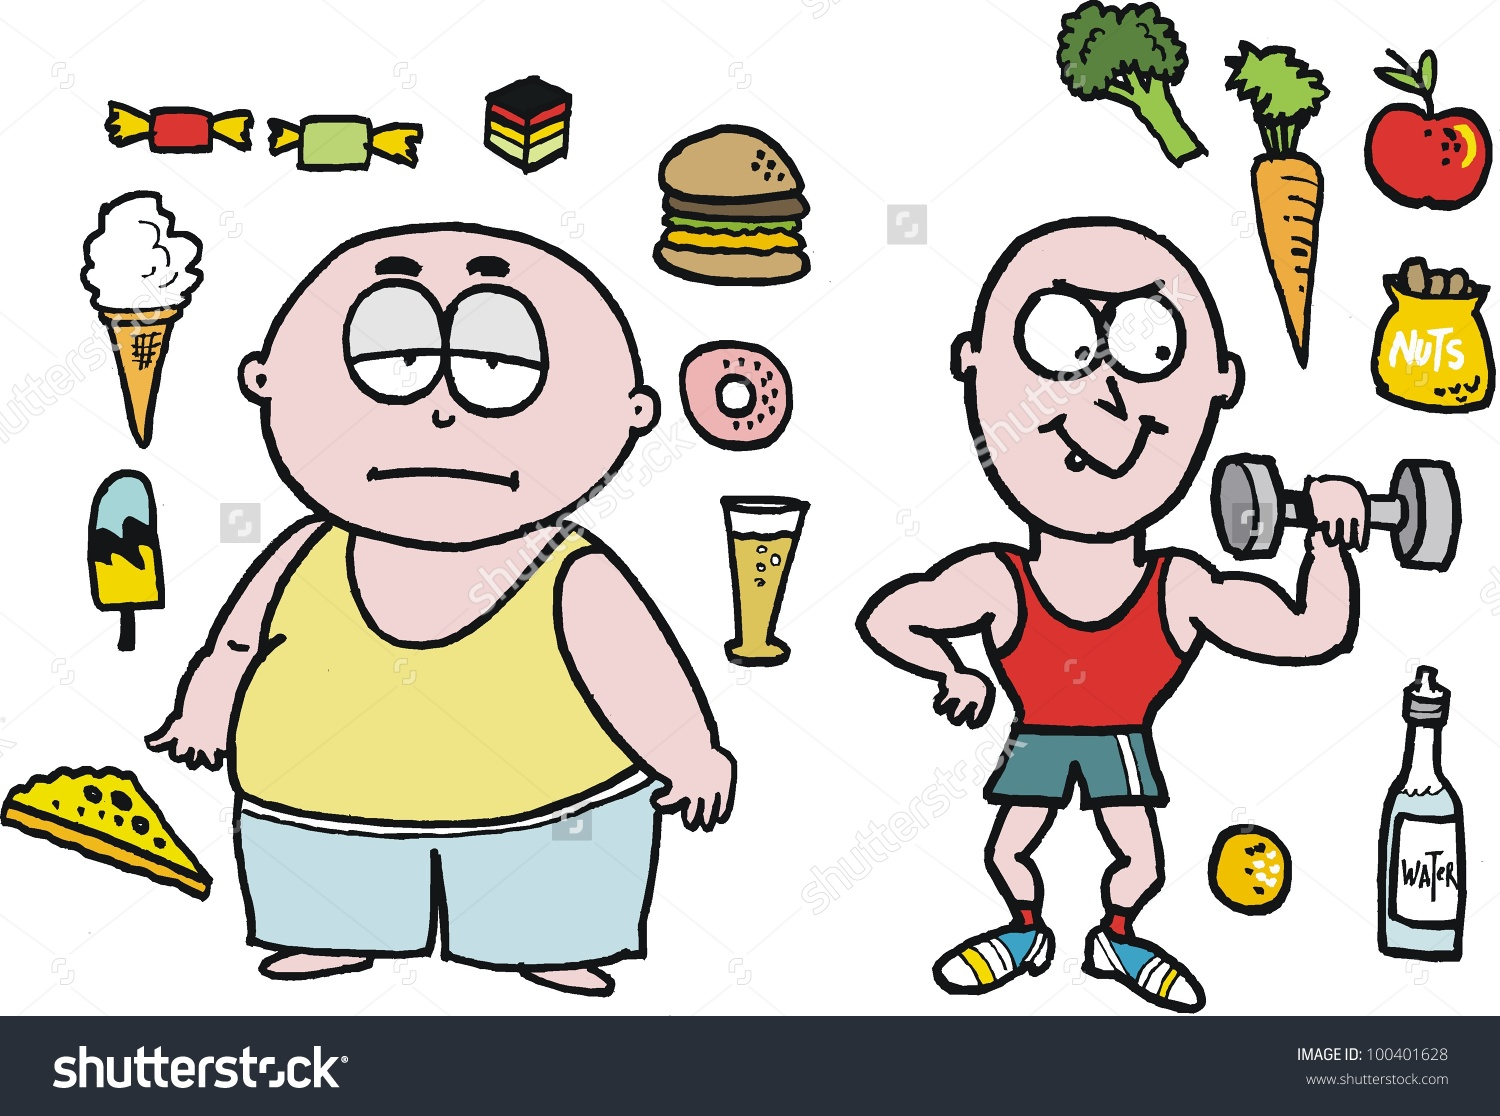 Free Healthy People Cliparts, Download Free Clip Art, Free Clip Art.